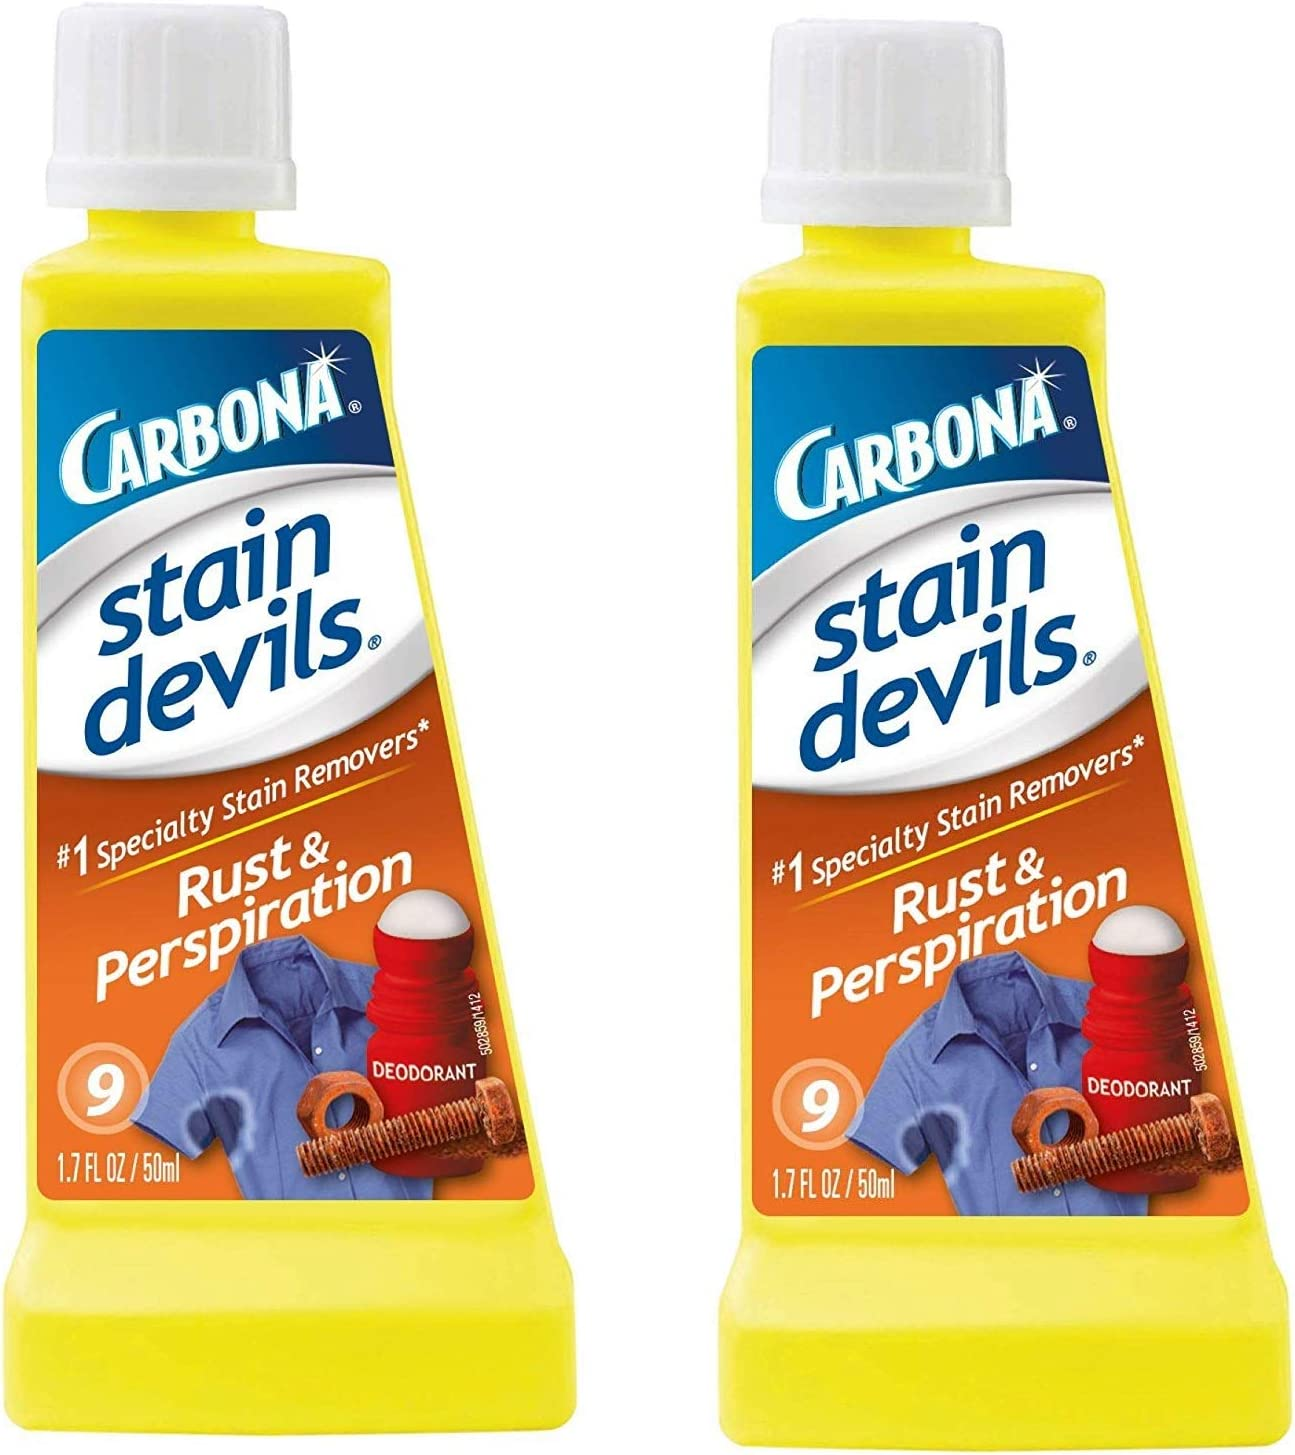 2 x Carbona Stain Devils #9 Rust & Perspiration - 1.7 oz